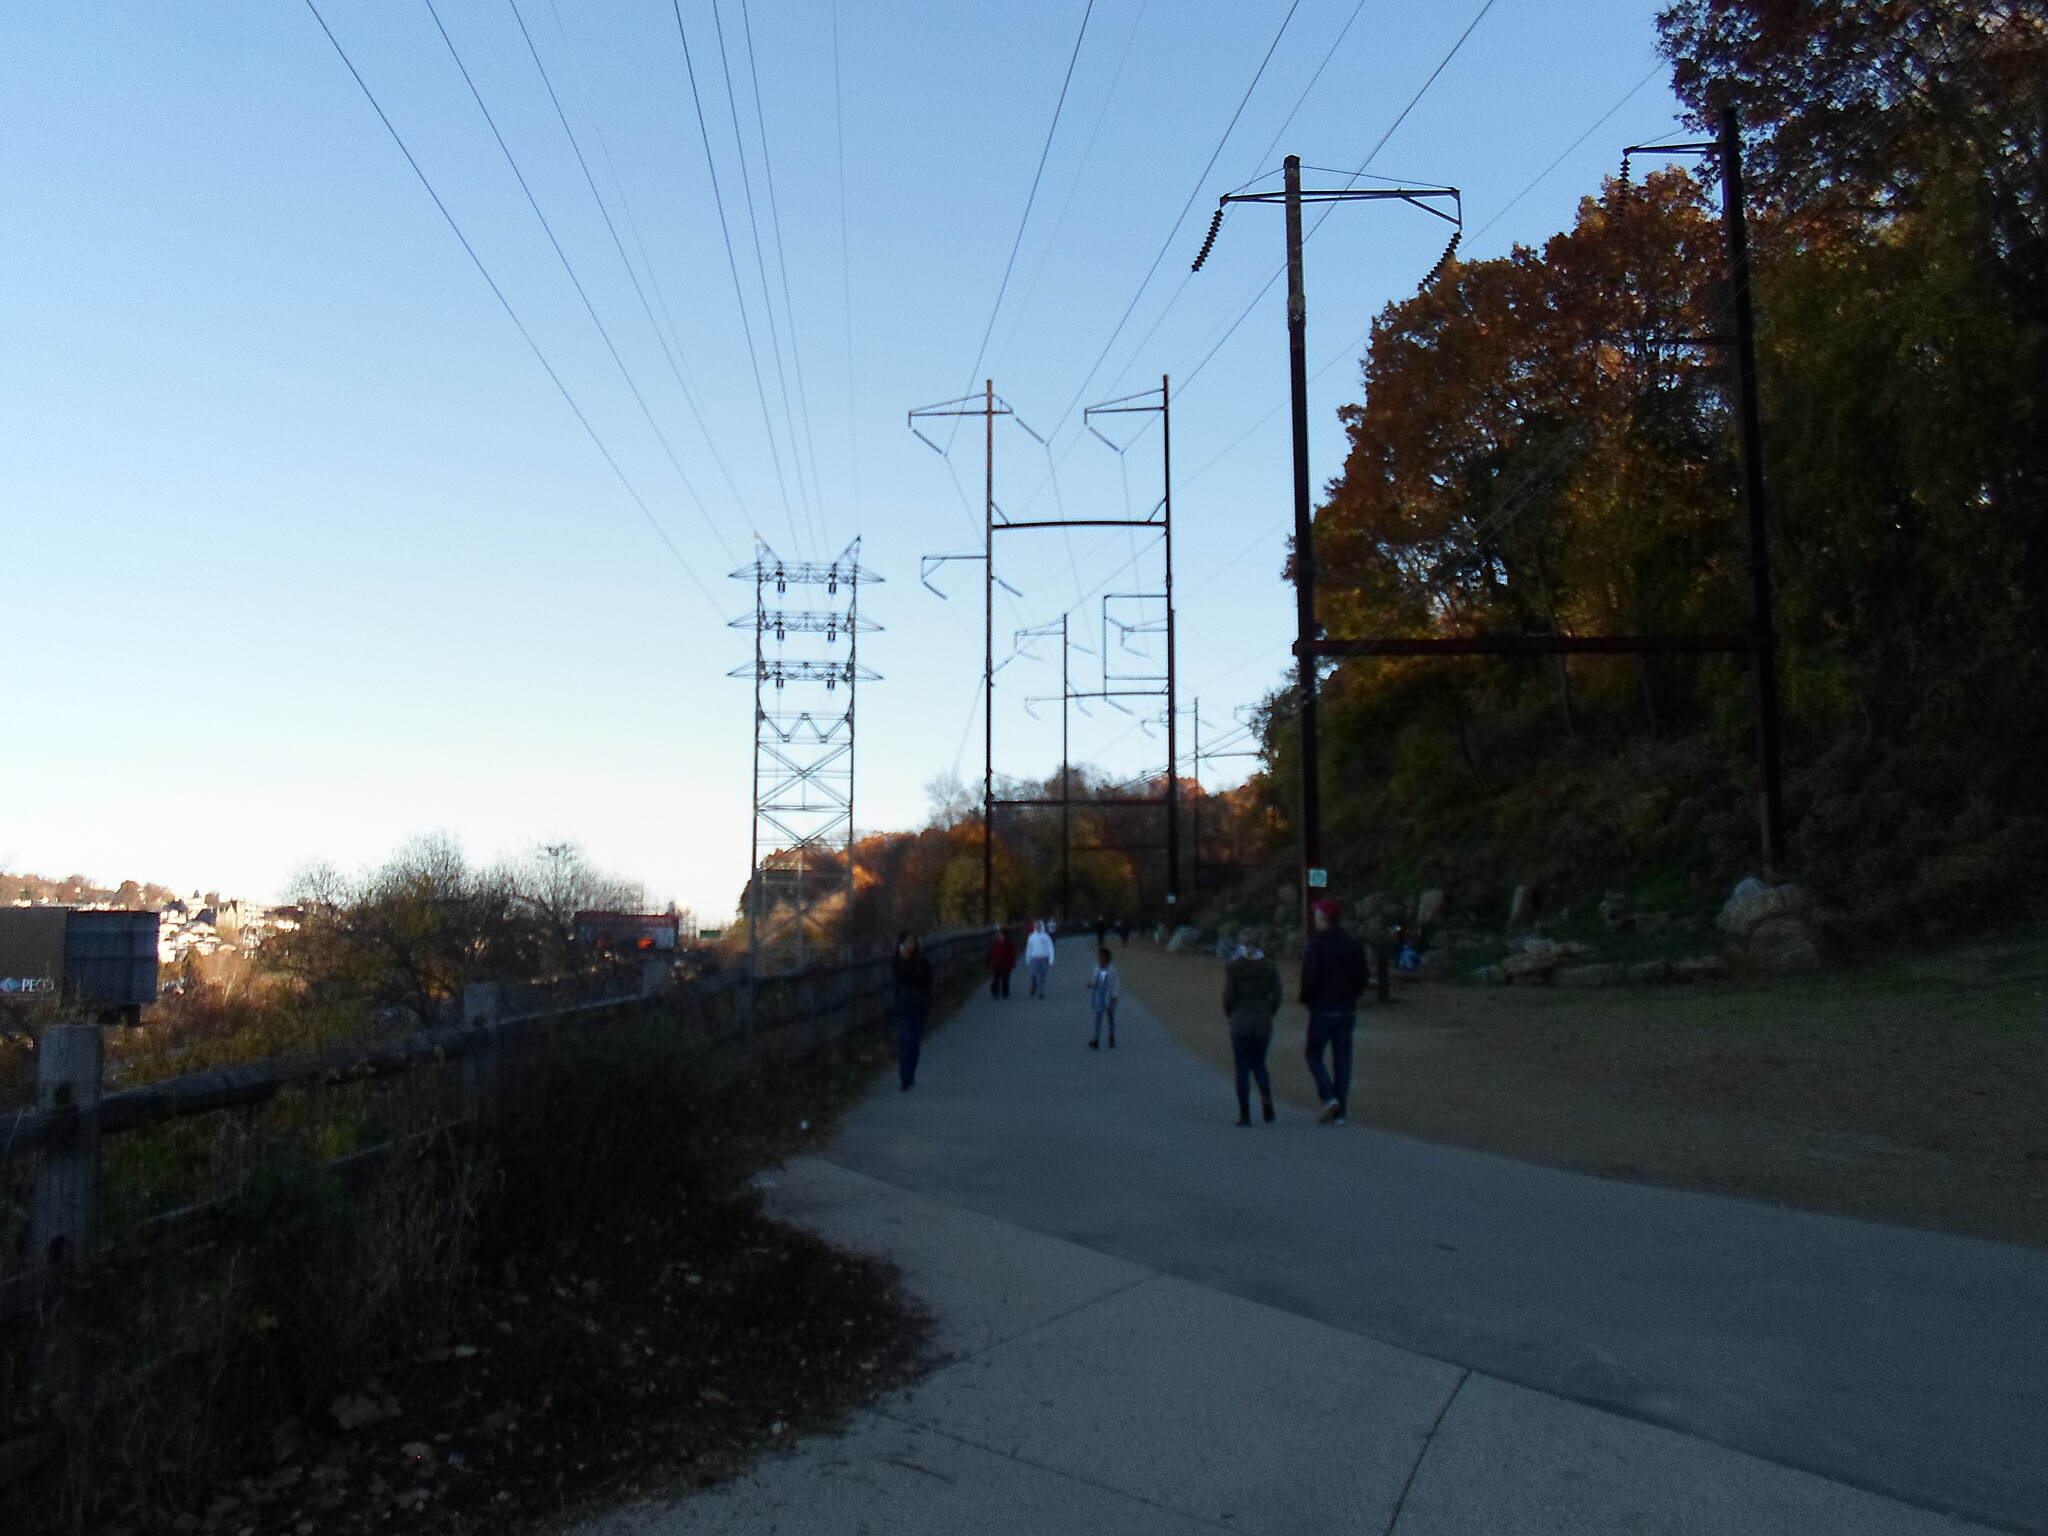 Cynwyd Heritage Trail Cynwyd Heritage Trail Looking south along the trail at the junction with the Manayunk trestle.